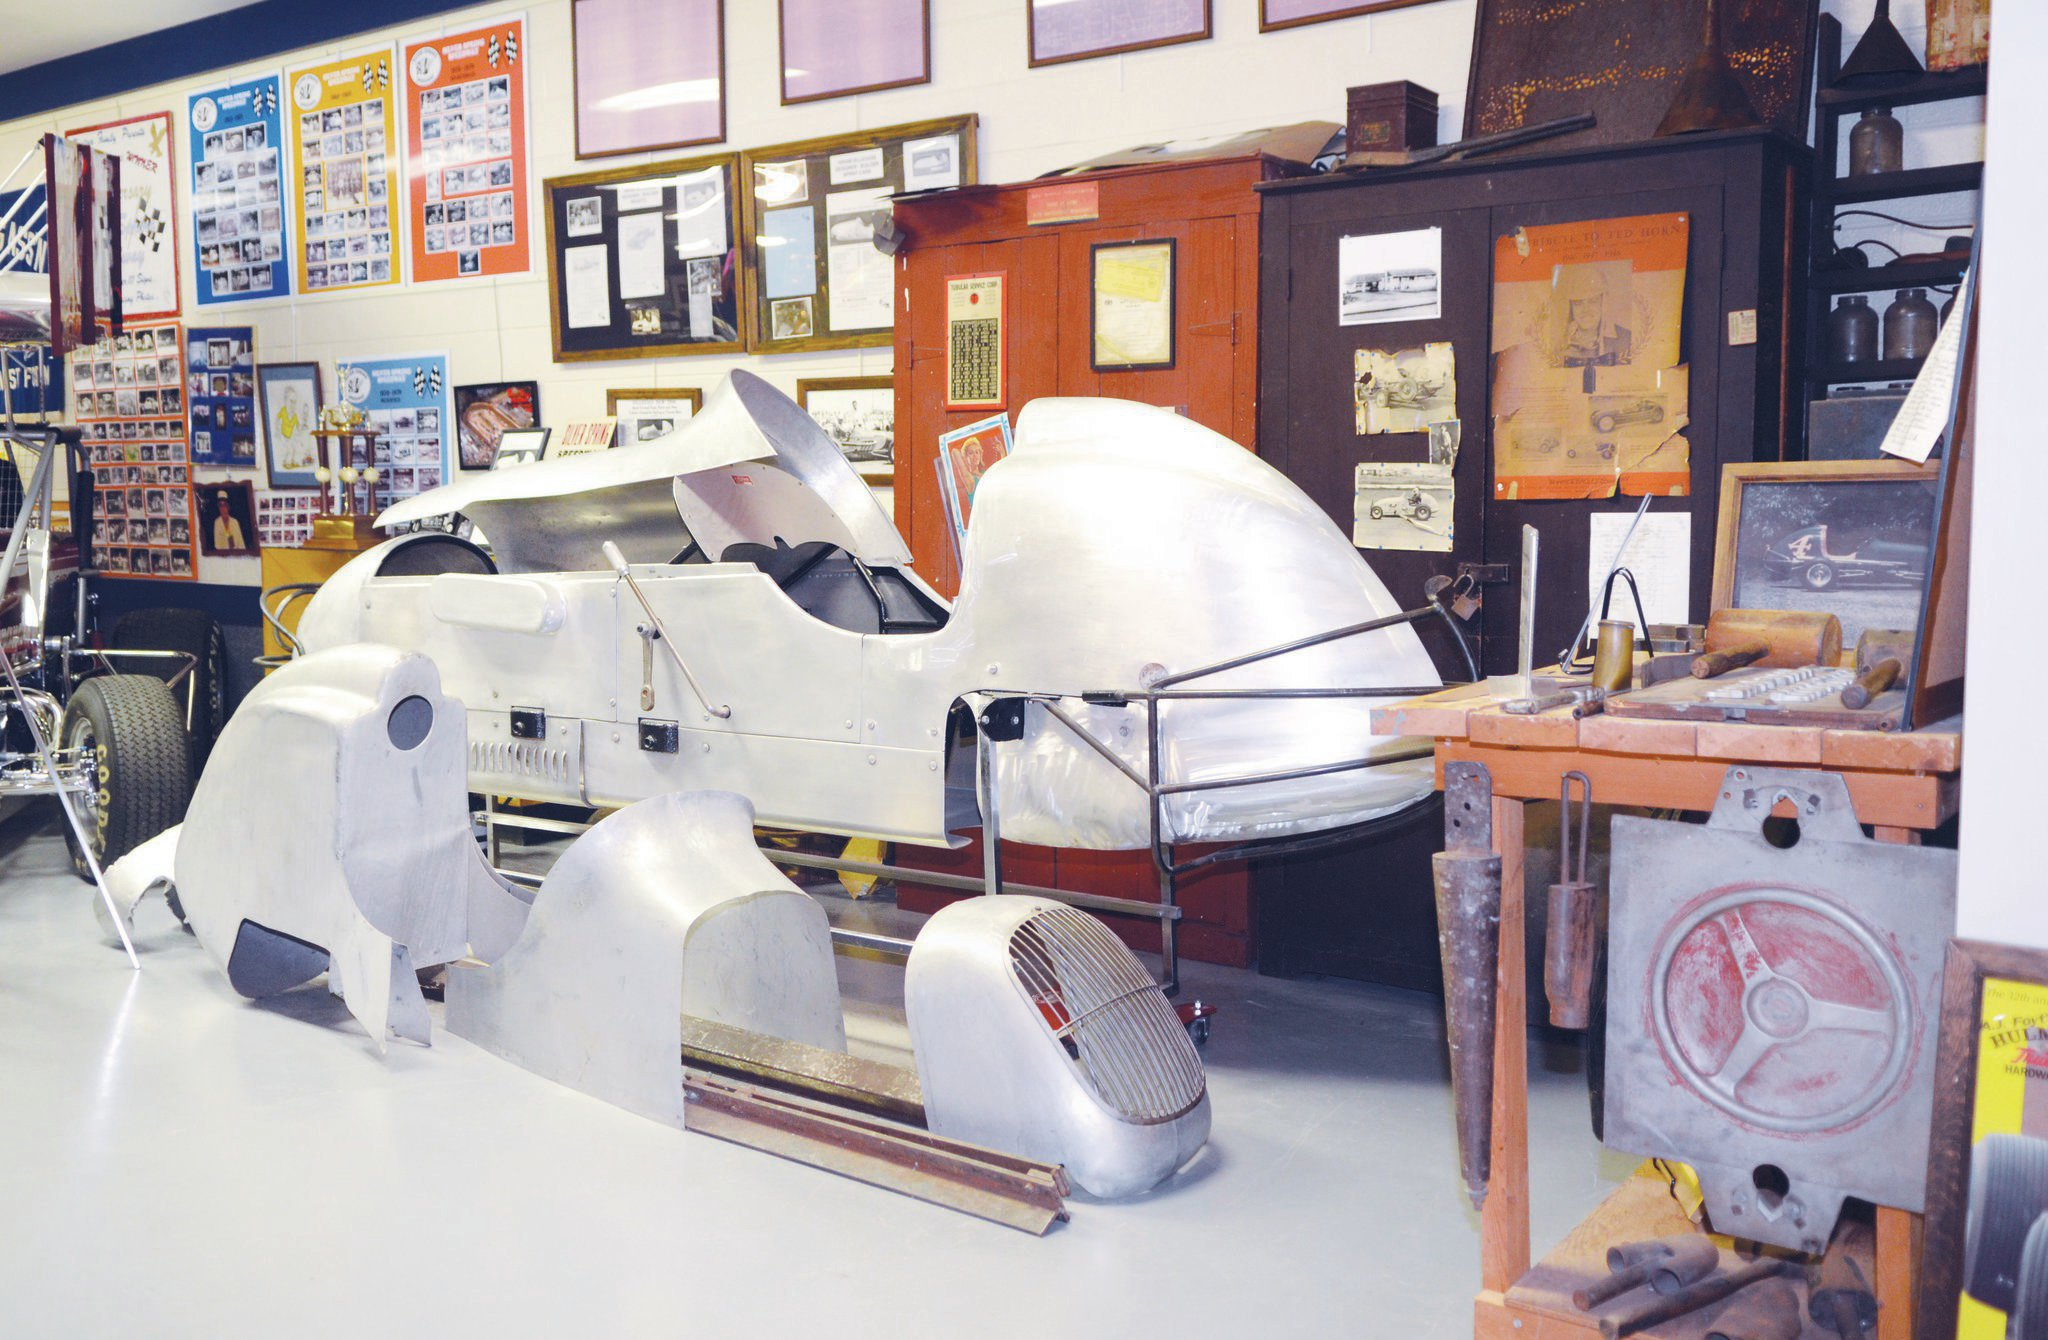 This display highlights a set of tools, hammer forms, and an under-construction roadster body. It is one of several life-size diorama-type layouts in the EMMR's multiple halls.